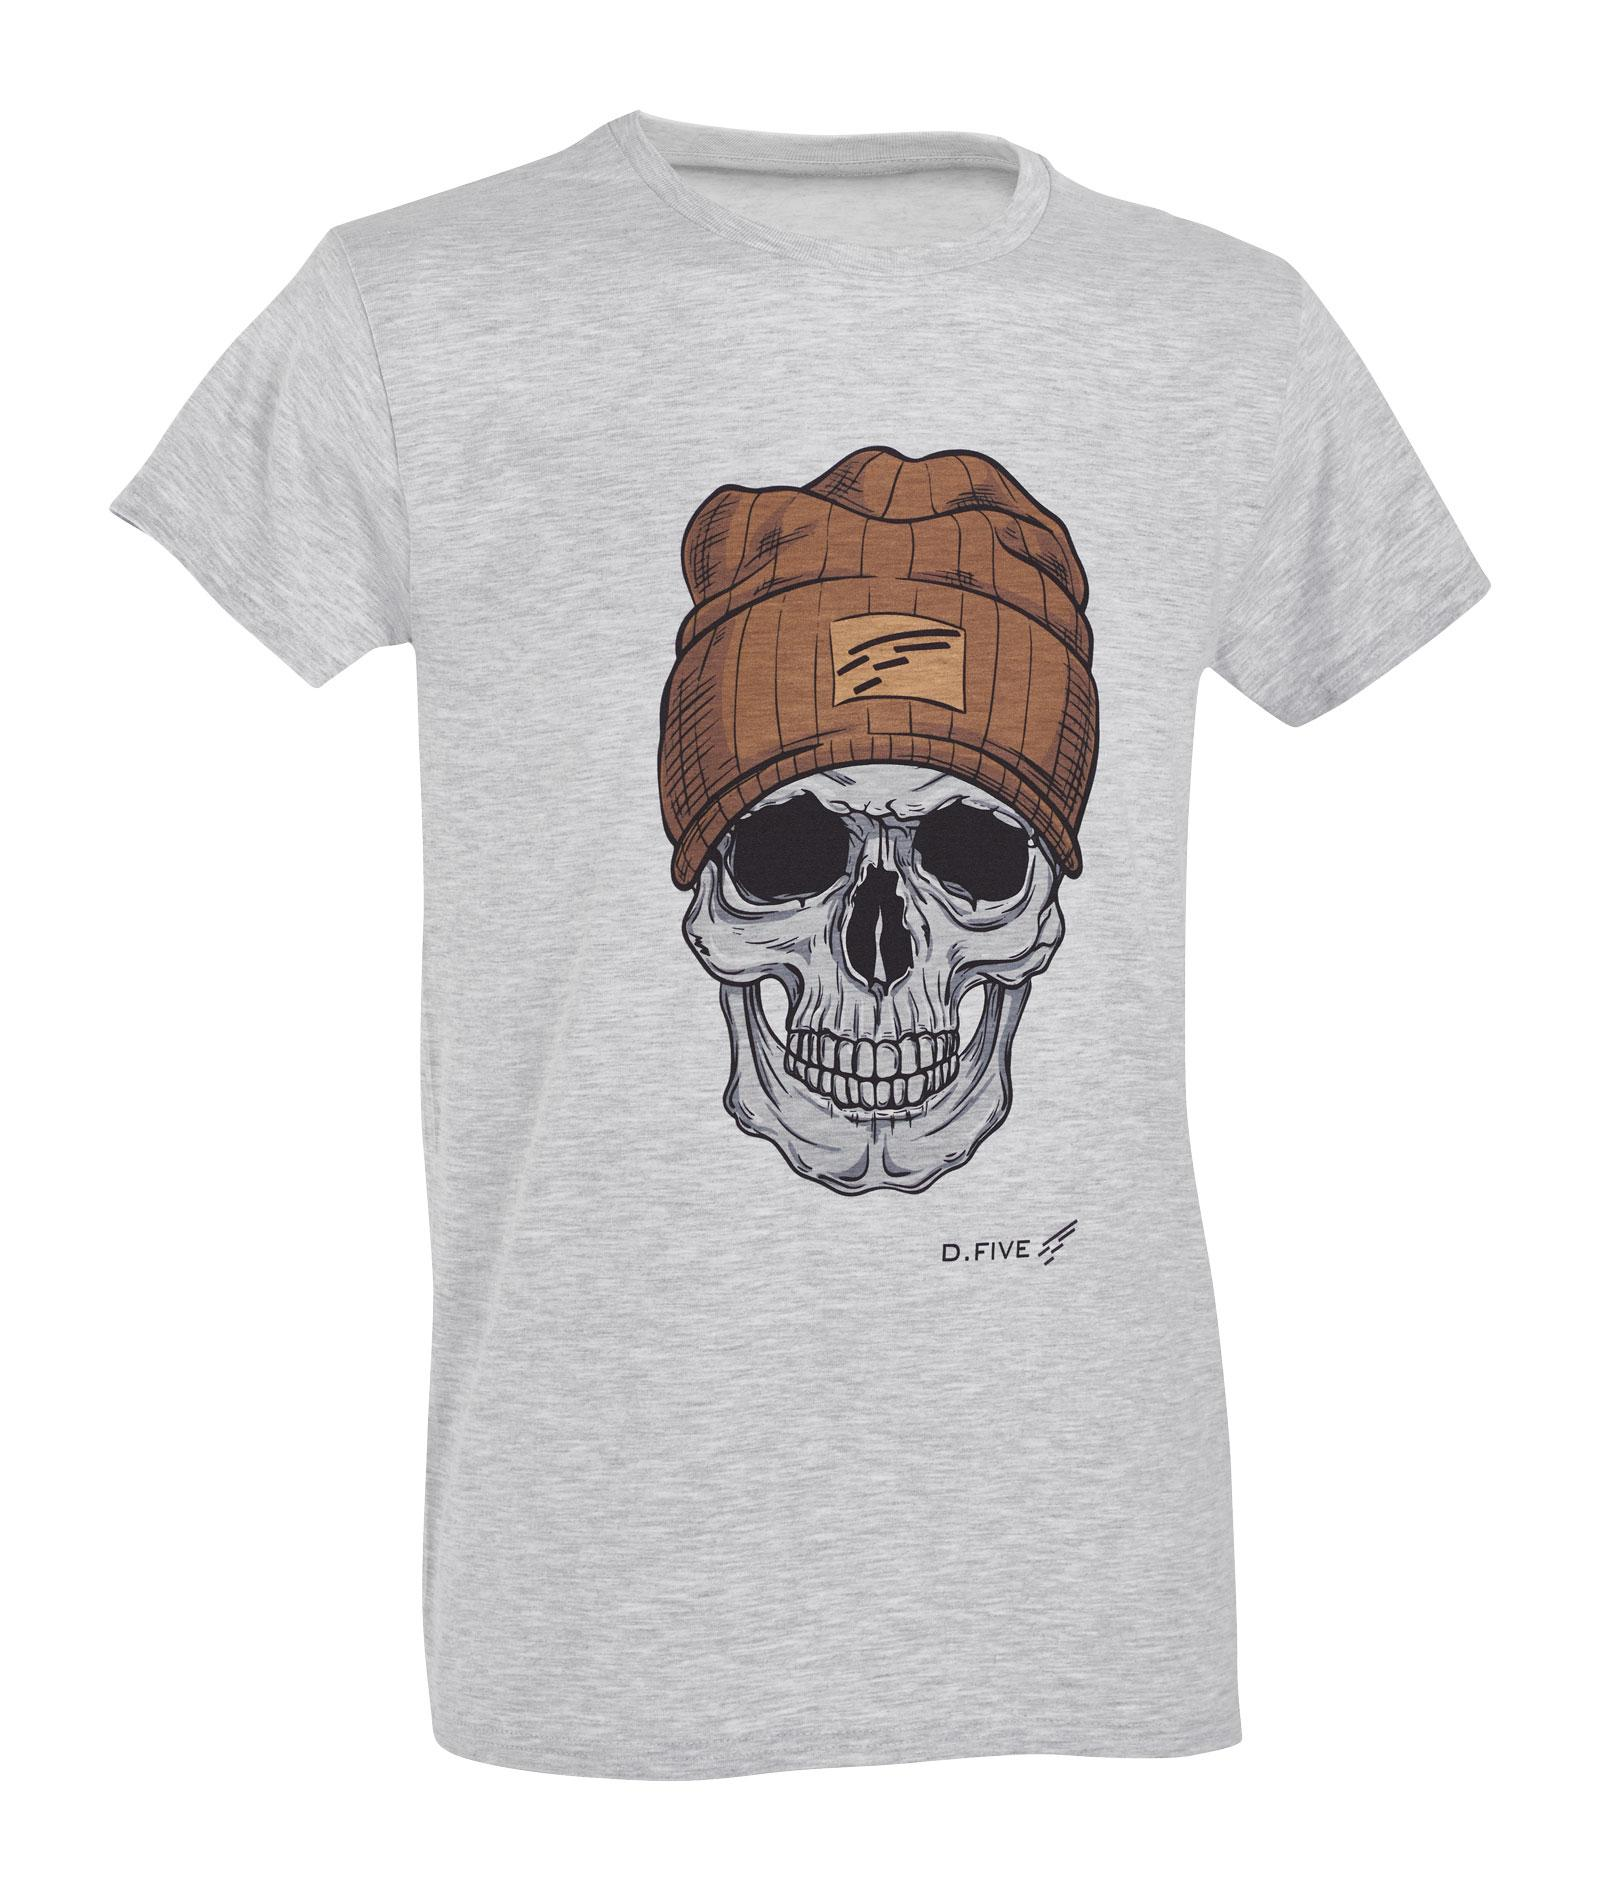 D.FIVE T-SHIRT WITH FRONT CHEST SKULL WITH WOOL CAP IMAGE